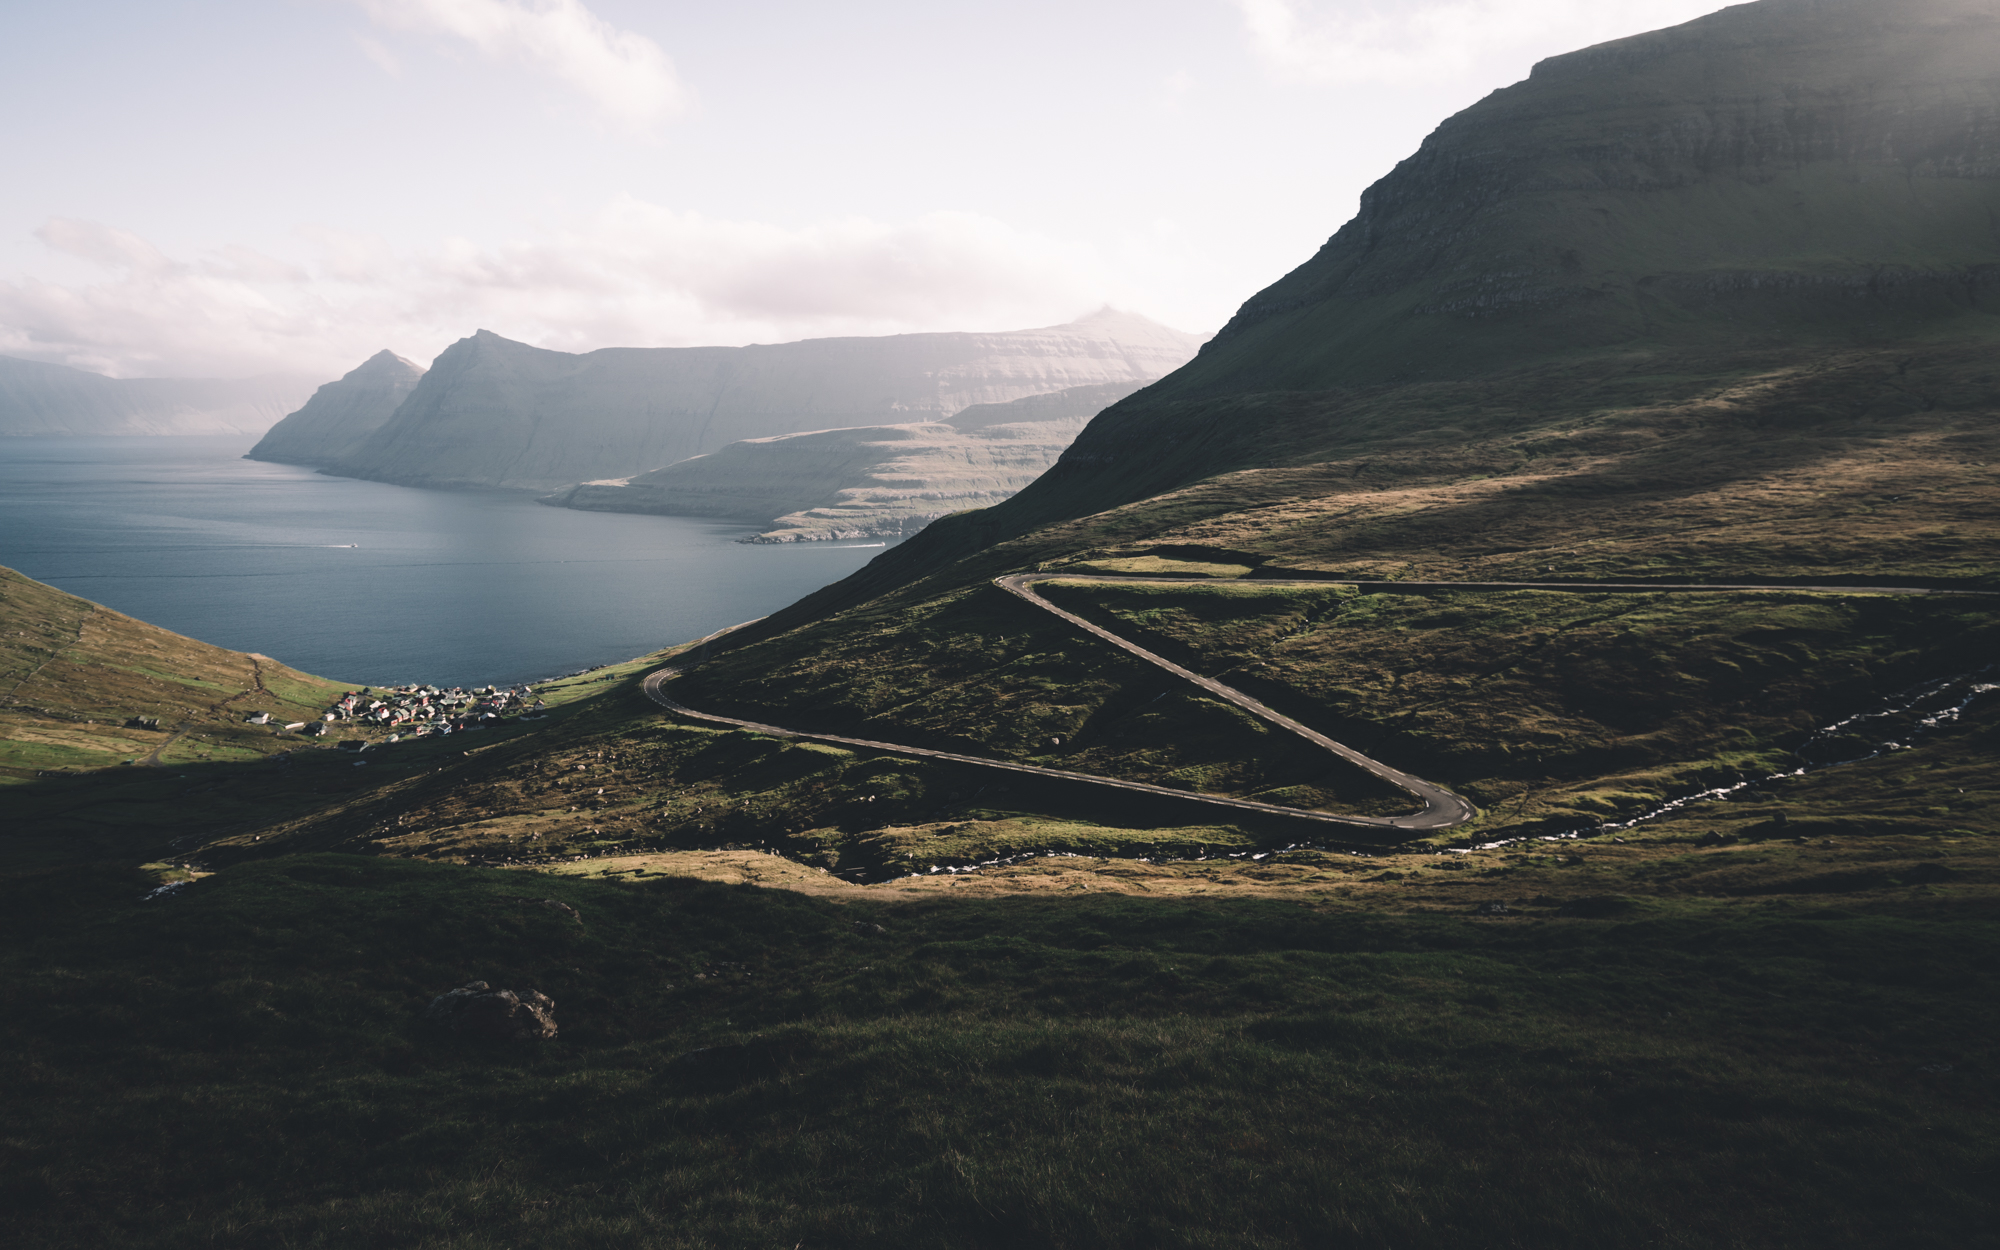 faroe-islands-108.jpg